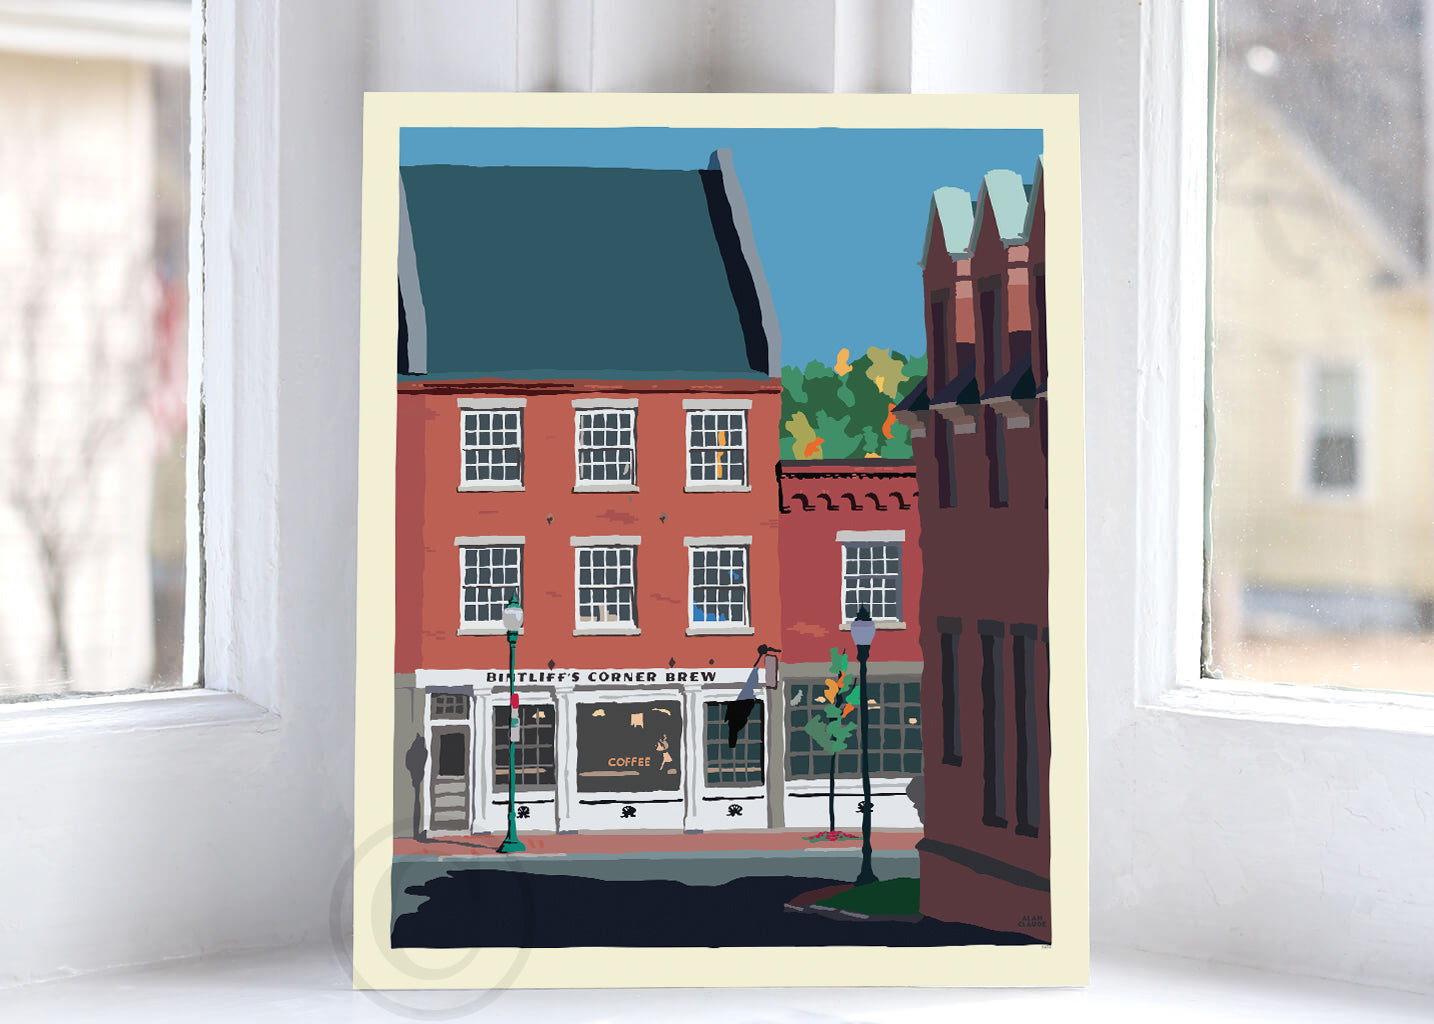 "Cafe in Gardiner Art Print 8"" x 10"" Wall Poster By Alan Claude"